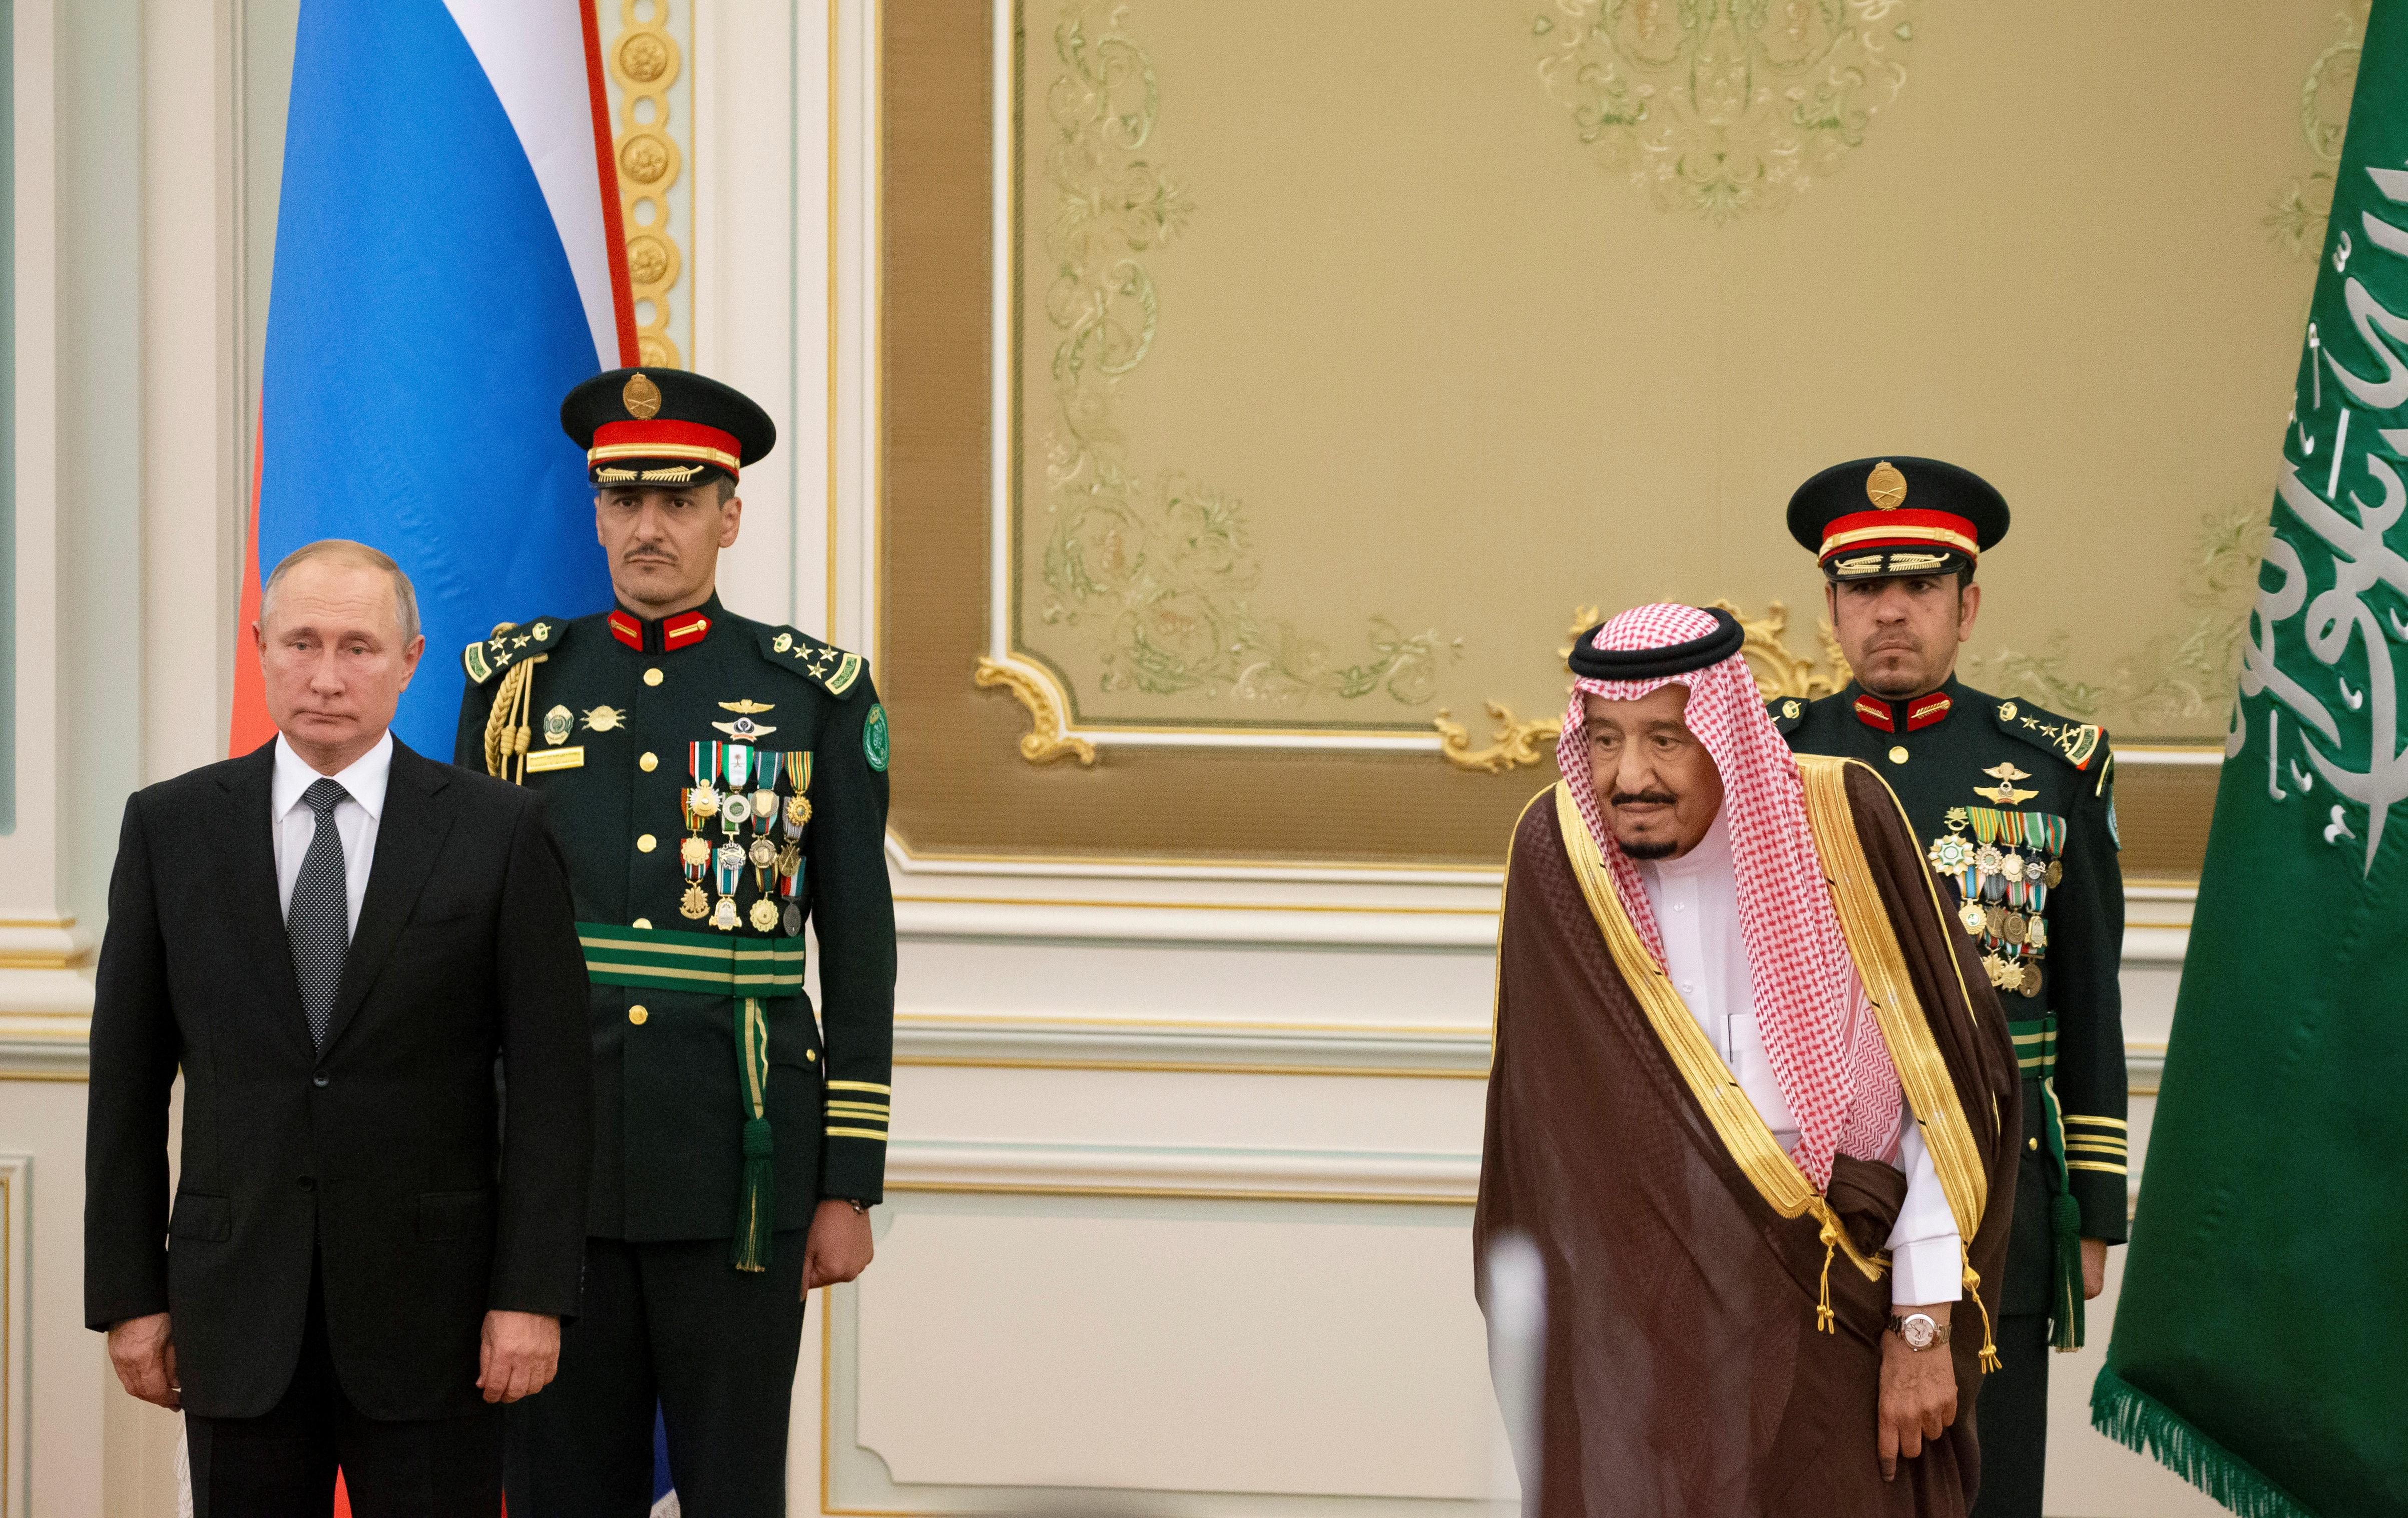 Saudi visit shows Putin's deepening Middle East influence